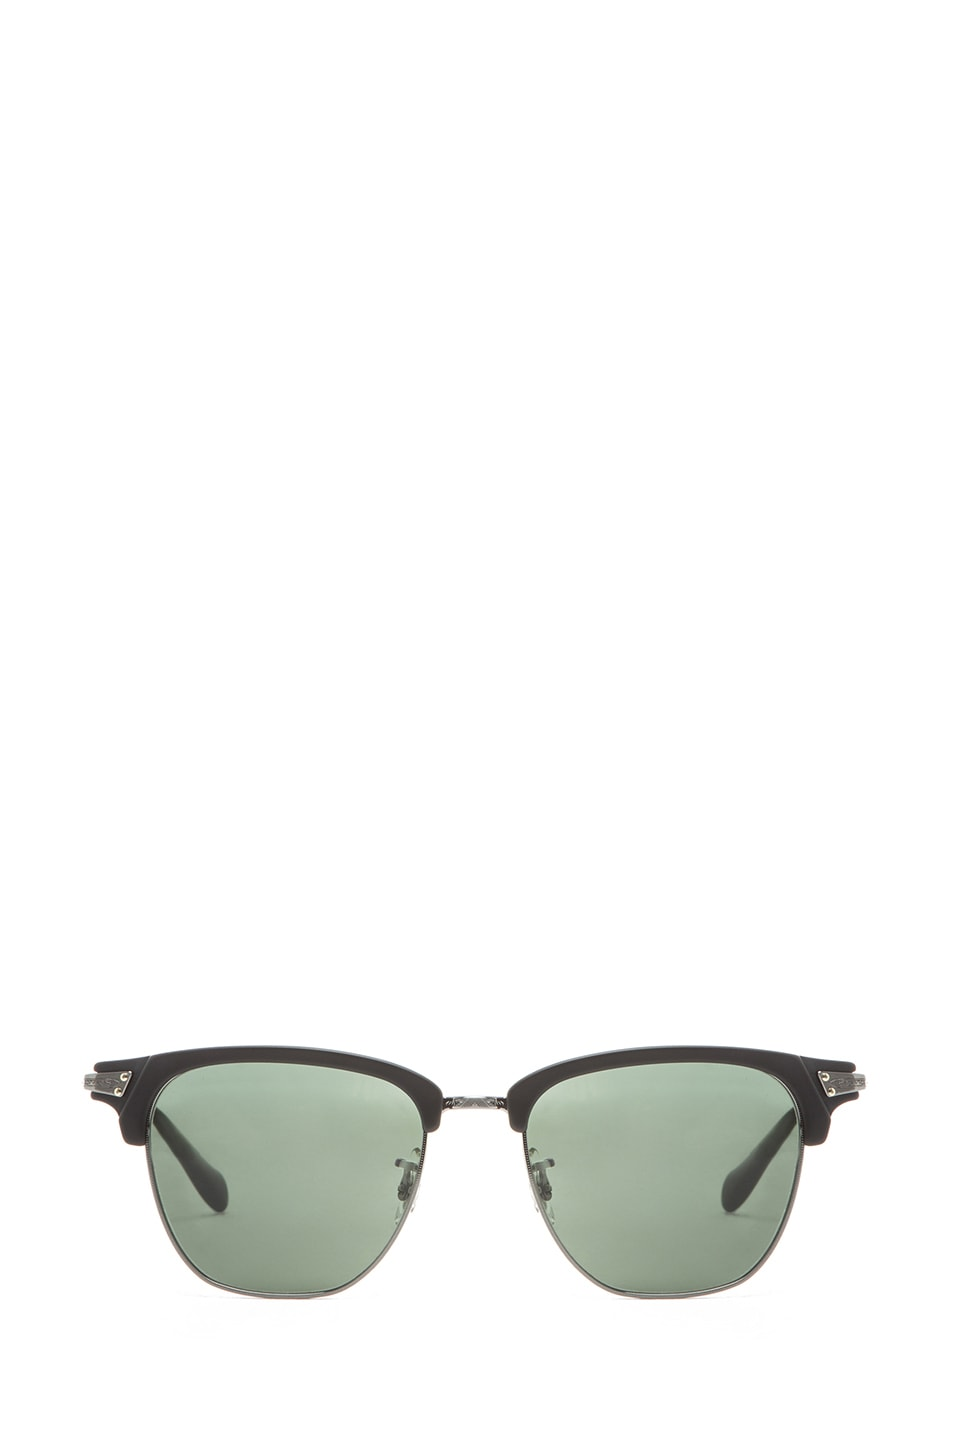 Image 1 of Oliver Peoples Banks Sunglasses in Matte Black